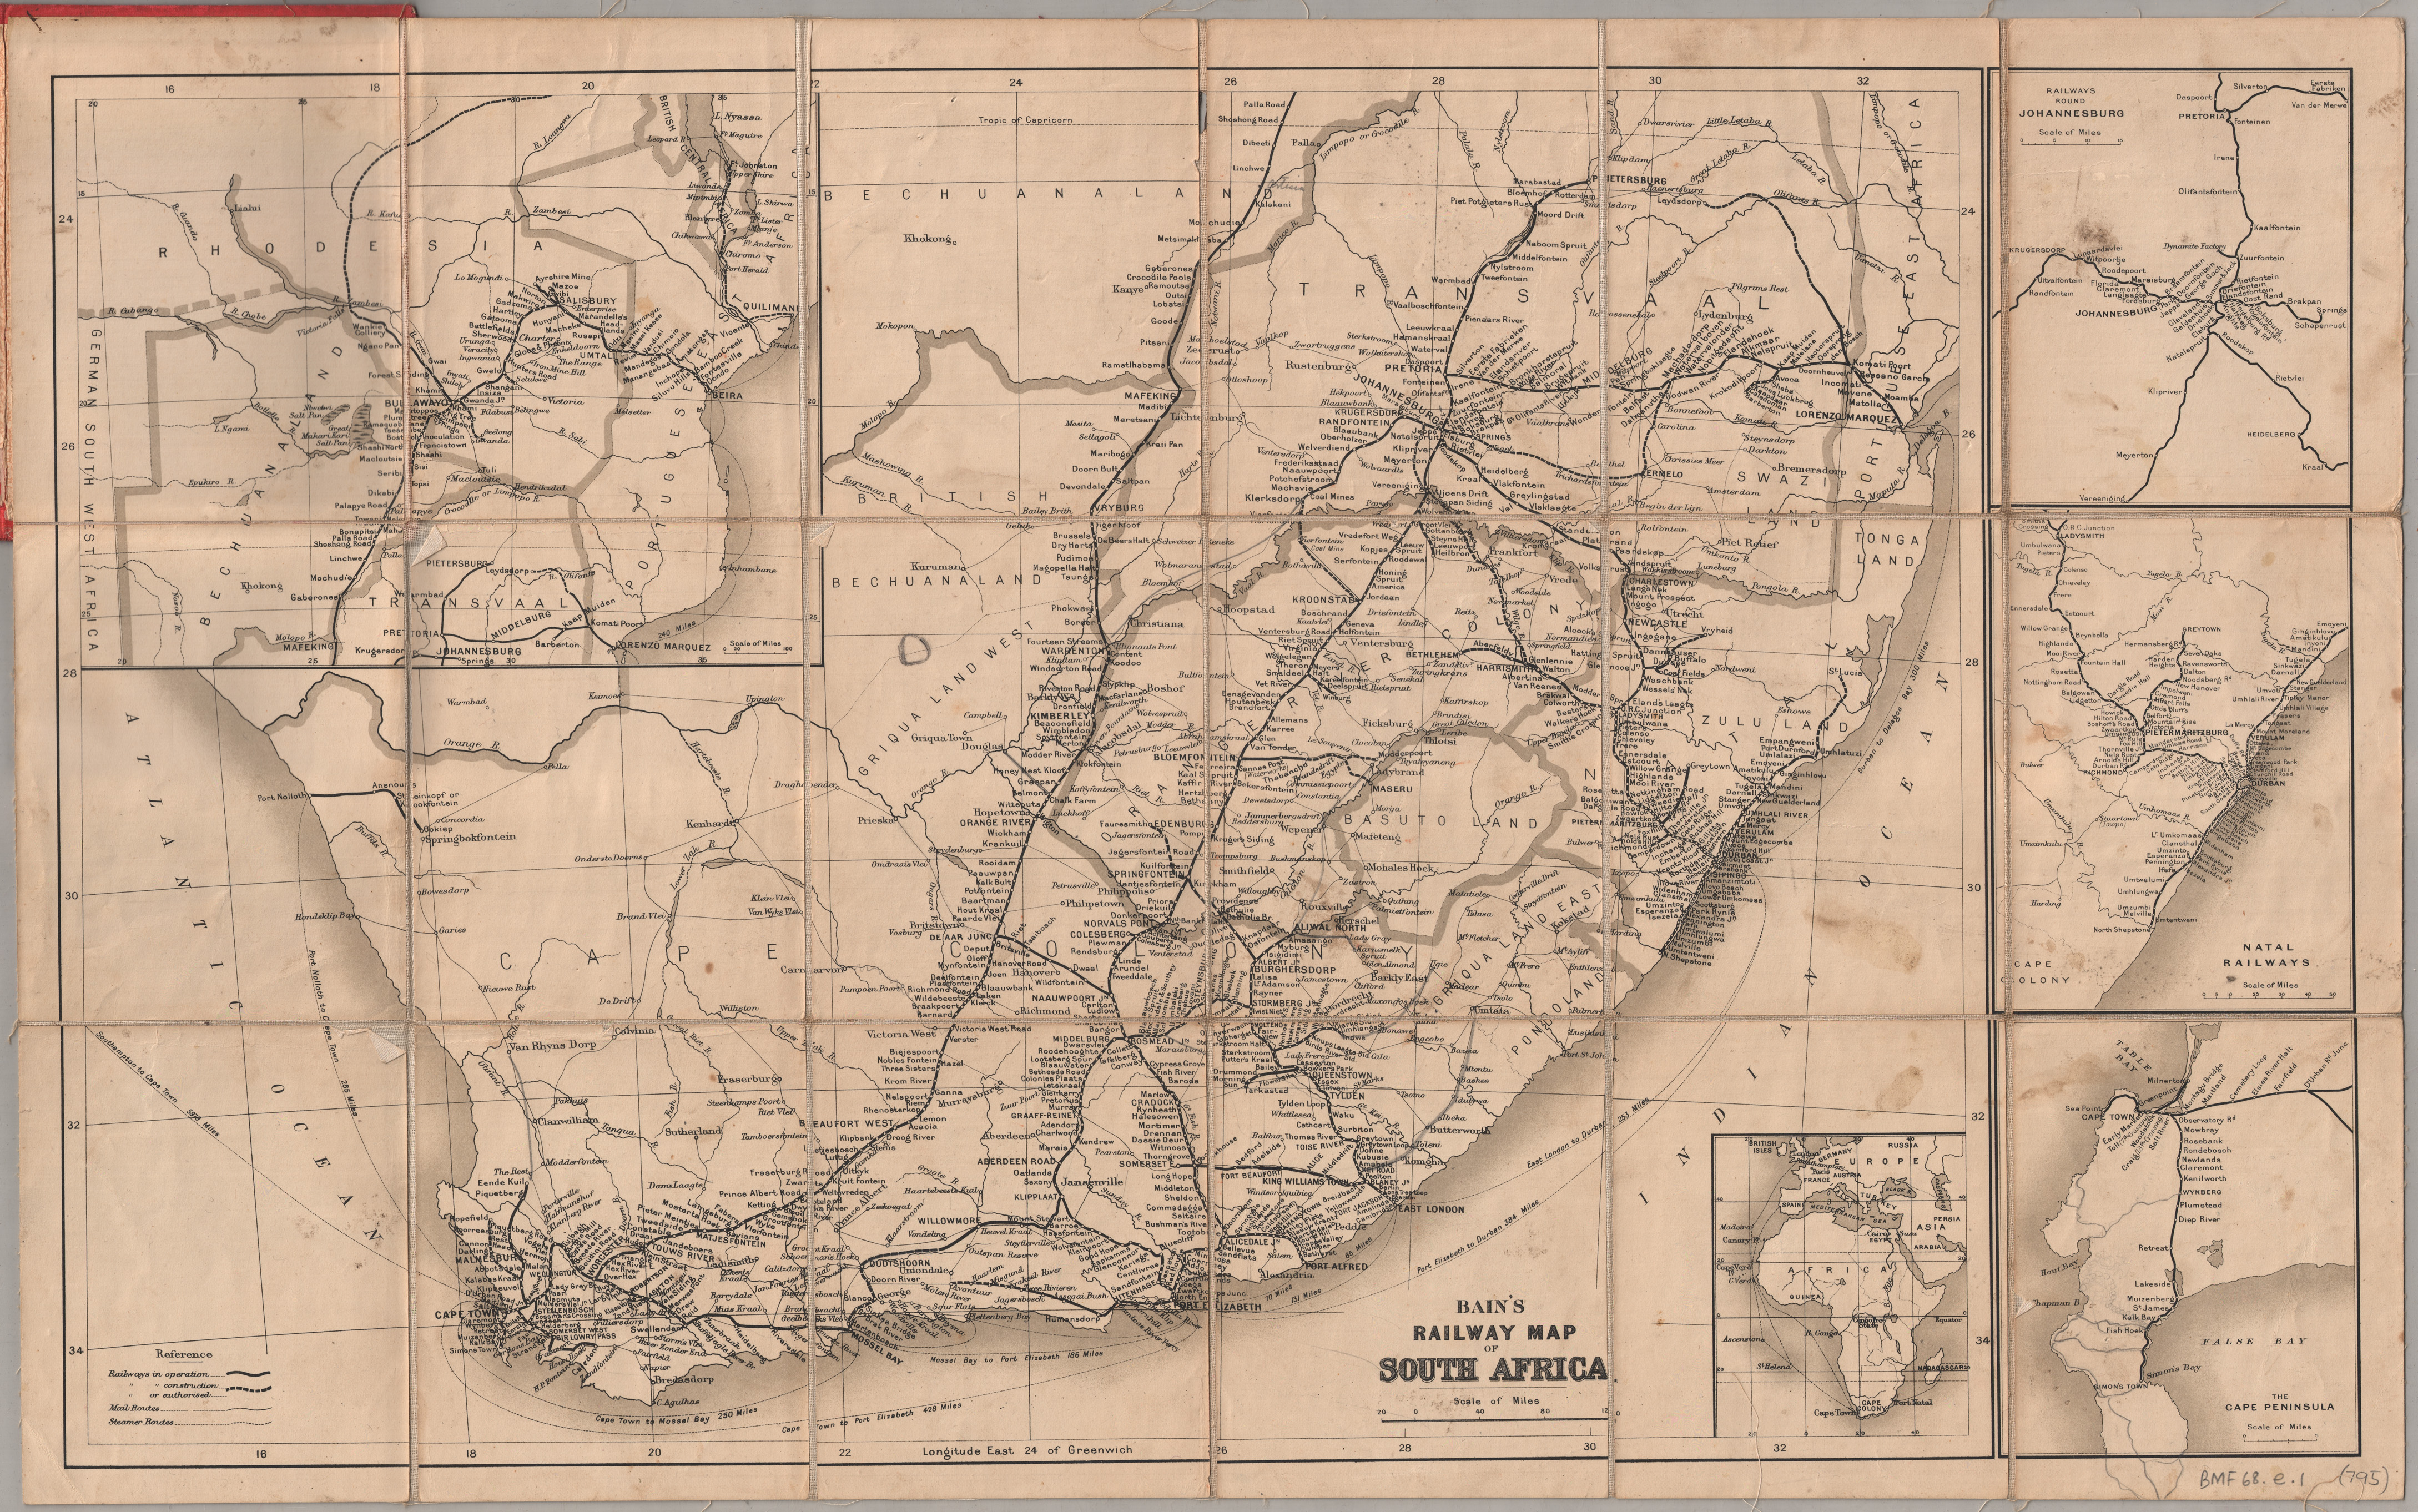 Bains railway map of south africa uct libraries digital collections bains railway map of south africa gumiabroncs Images